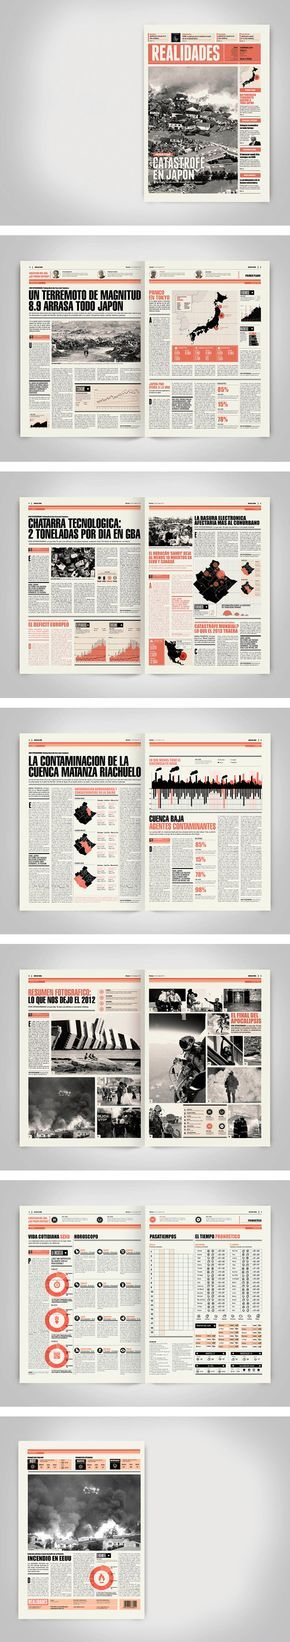 love the mods in between text great modular design  Newspaper Design by Boris Vargas Vasquez